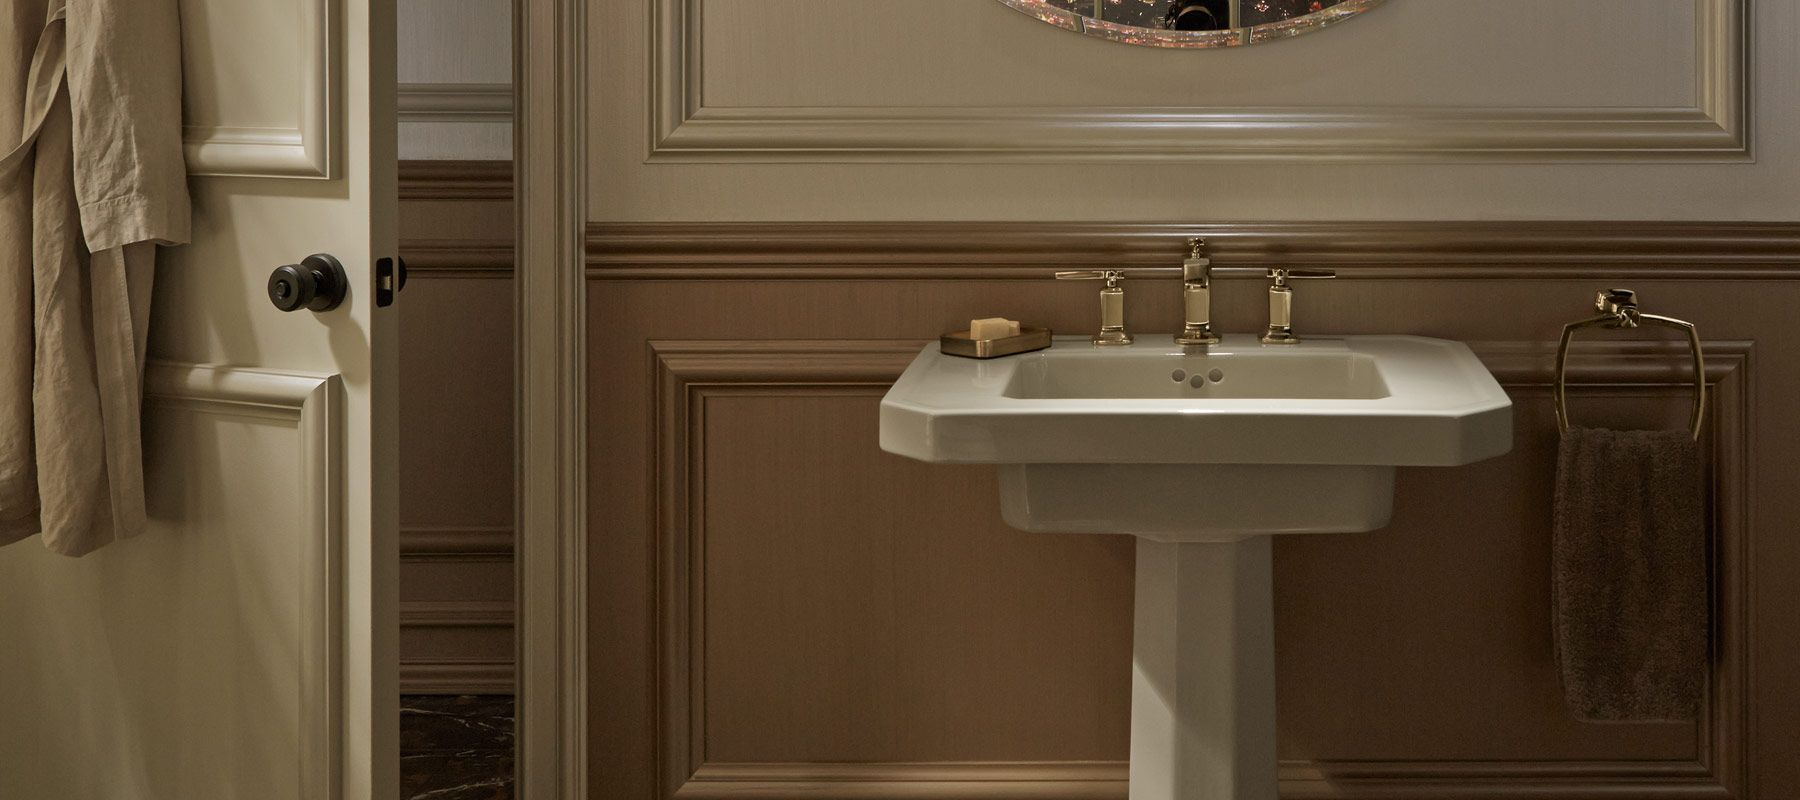 Pedestal Bathroom Sinks Bathroom Kohler